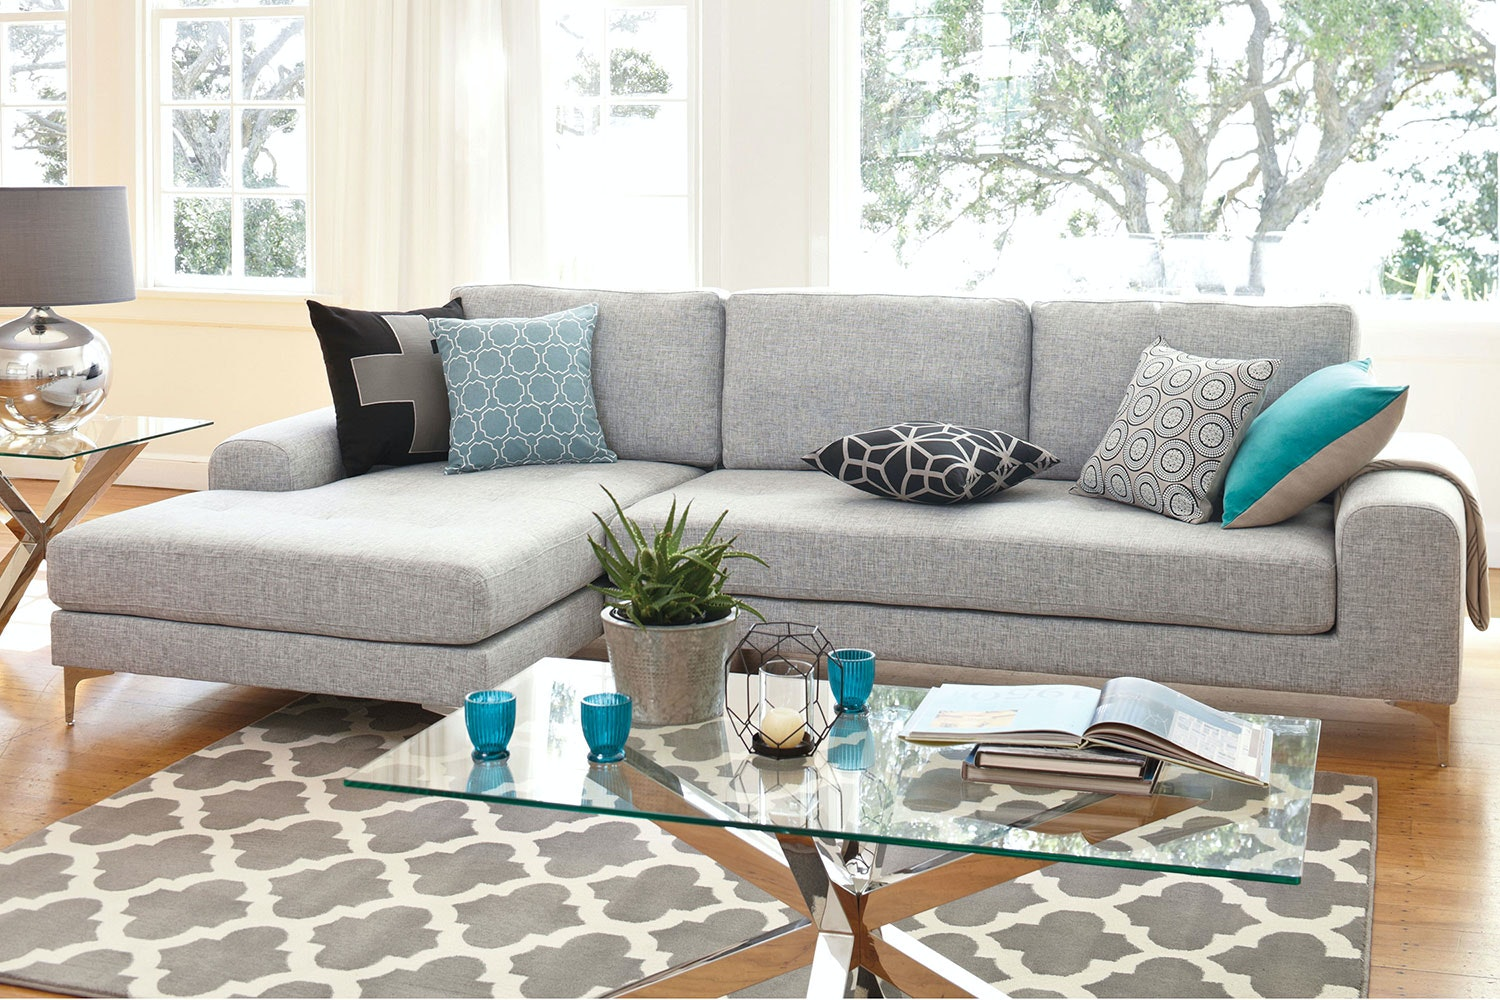 Abilene 2.5 Seat Fabric Sofa with Chaise by Garry Masters